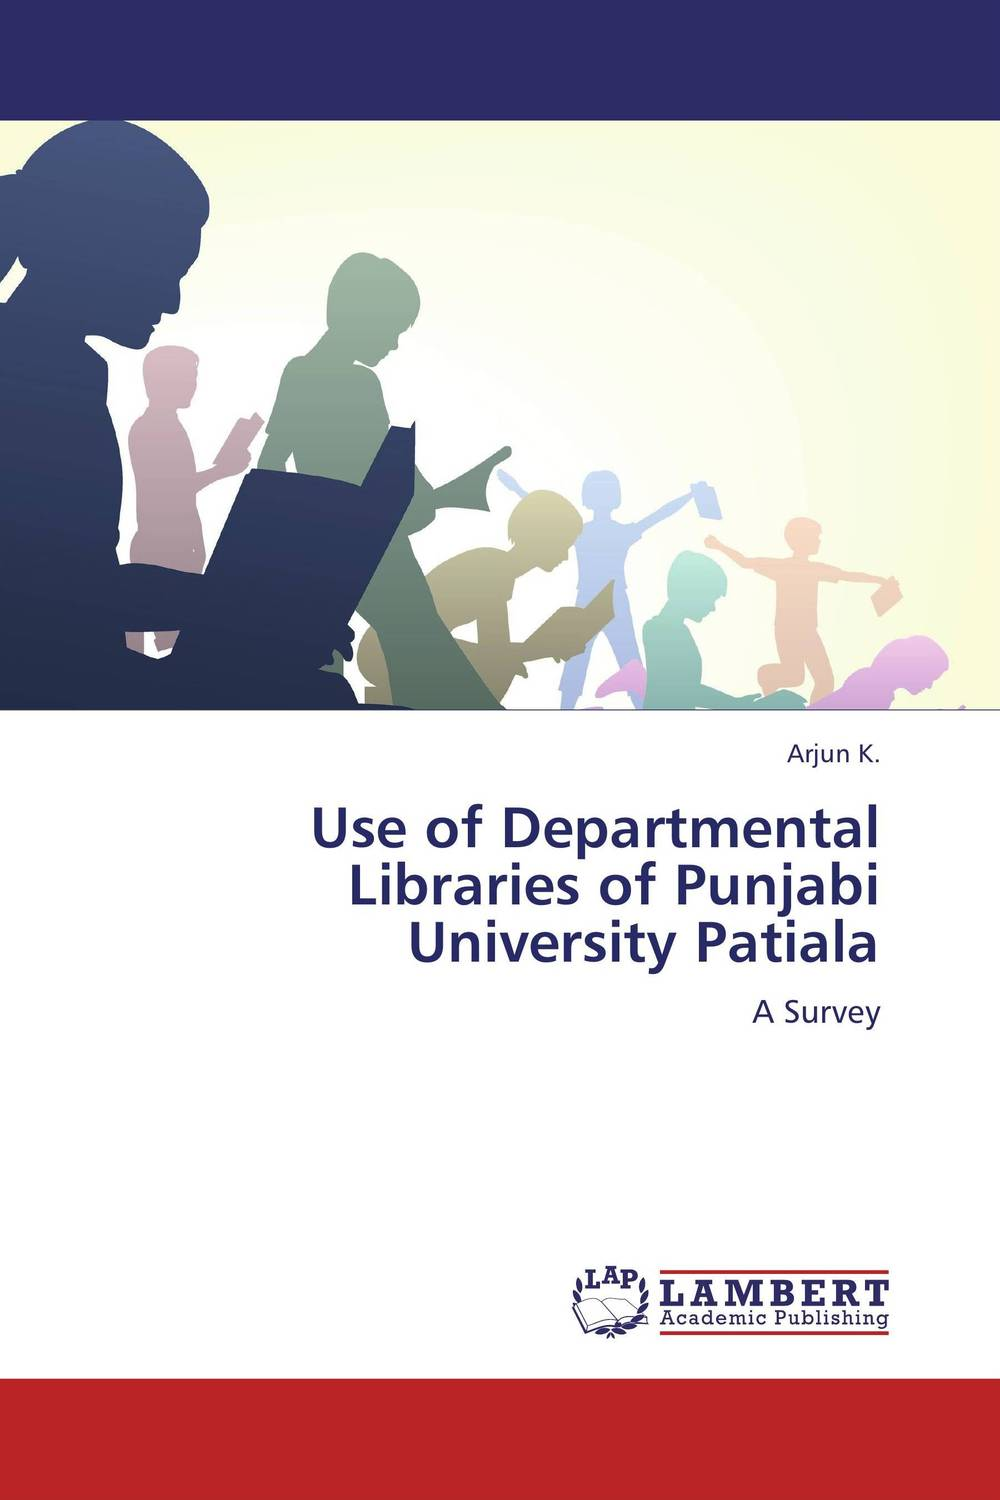 купить Use of Departmental Libraries of Punjabi University Patiala недорого